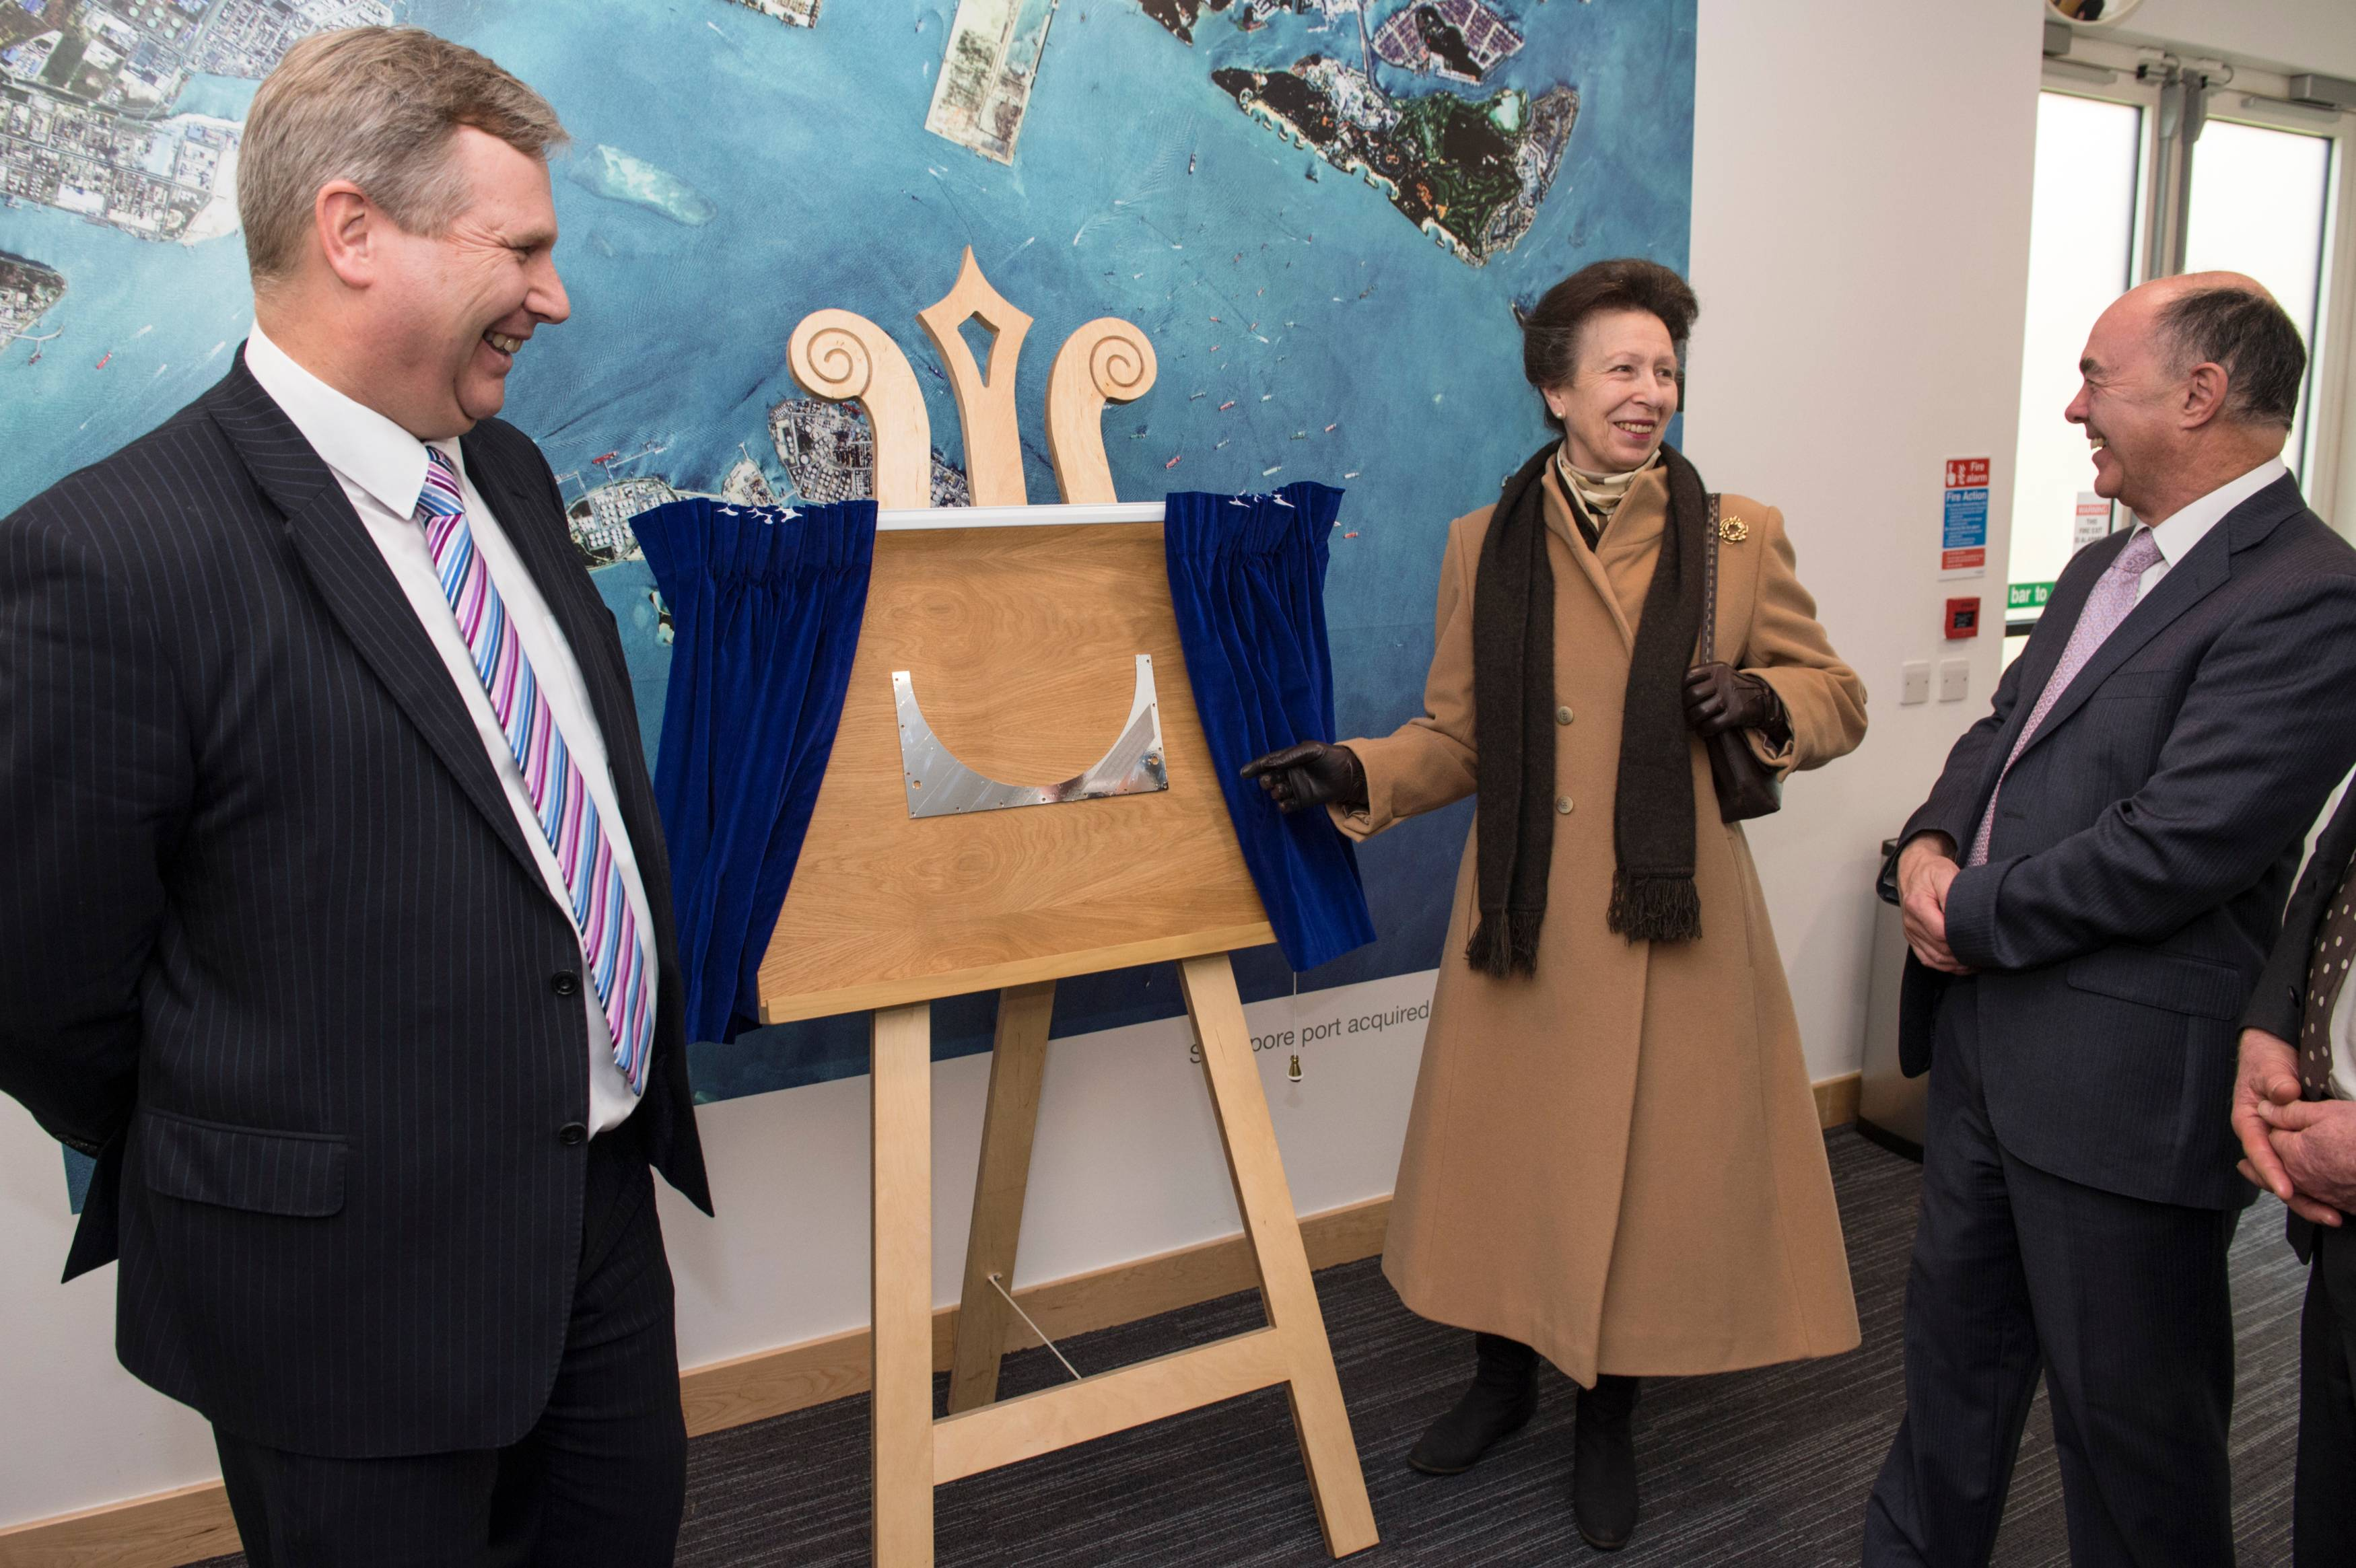 The Princess Royal unveils an engraved plaque commemorating her visit, with Patrick Wood (left) and Sir Martin Sweeting (right).  The plaque is part of the mechanical structure of a satellite that will be launched in 2017.